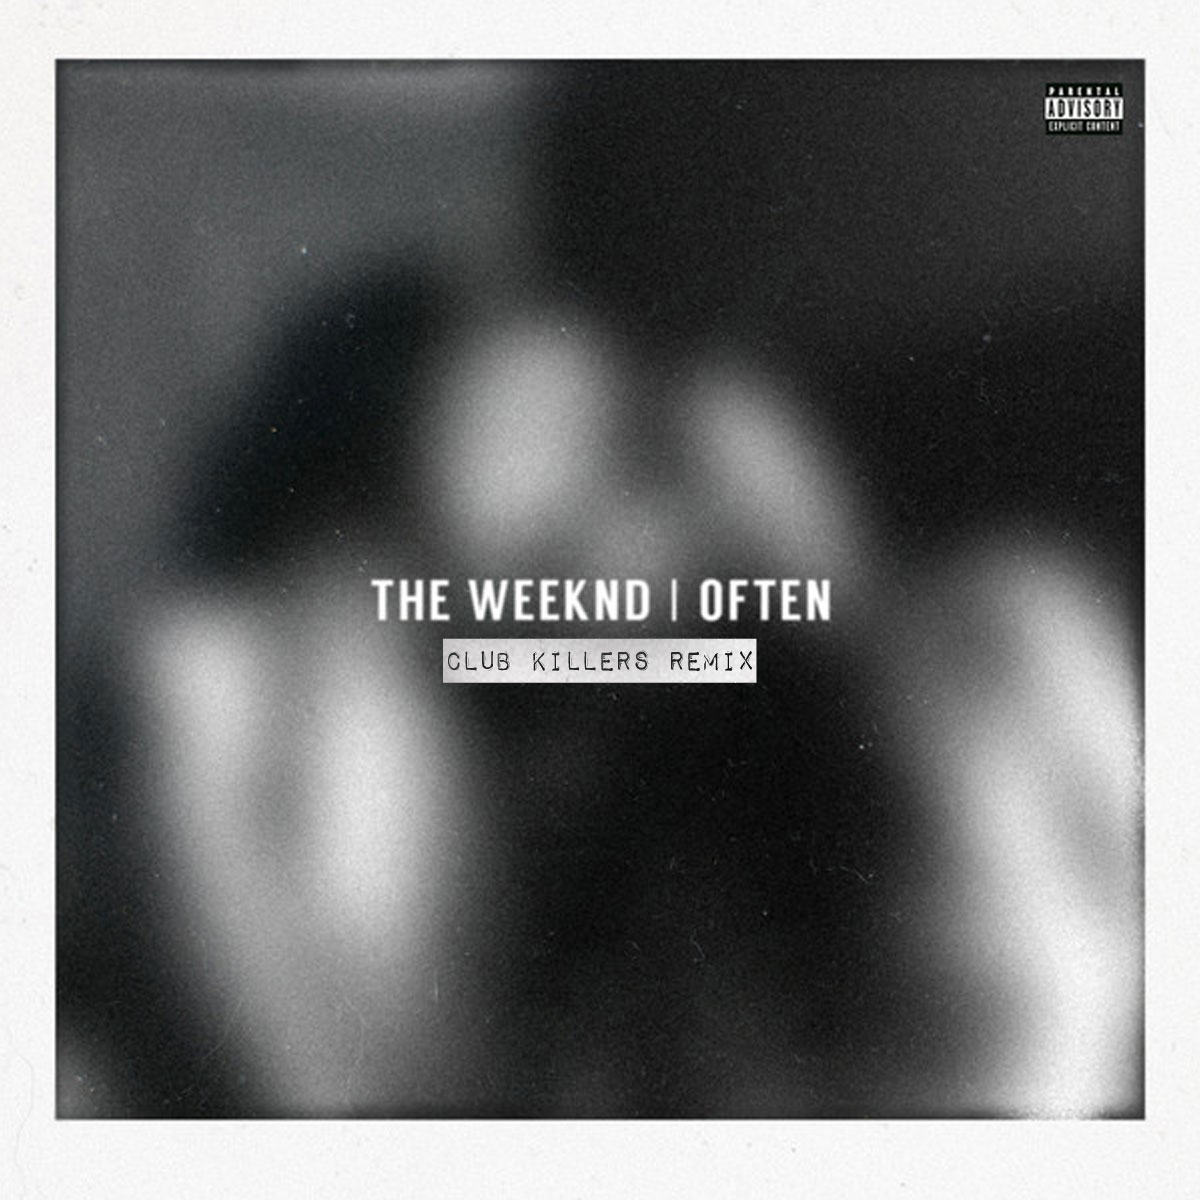 The Weeknd - Often (Club Killers Remix) - ARTWORK